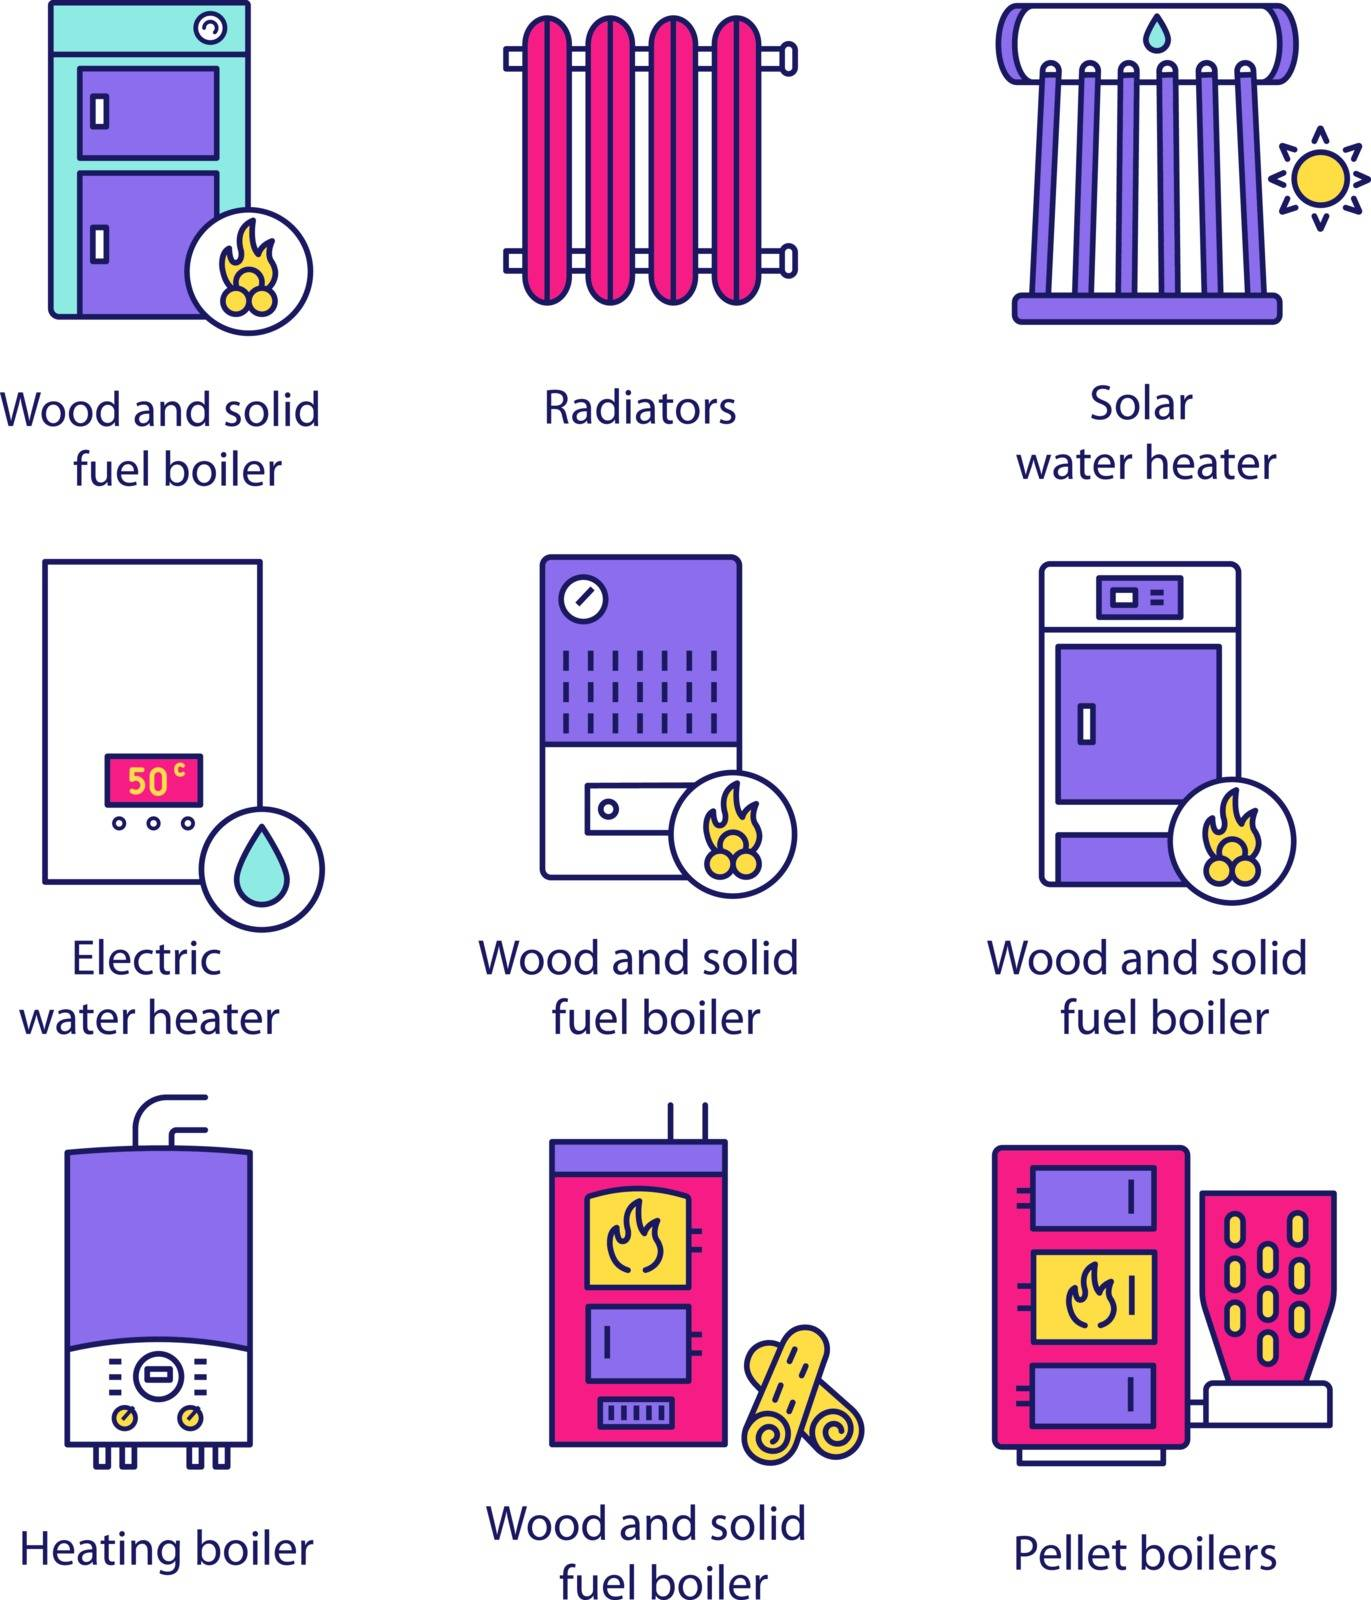 Heating color icons set. Boilers, radiators, water heaters. Gas, electric, solid fuel, pellet, solar boilers. Commercial, industrial and domestic central heating systems. Isolated vector illustrations